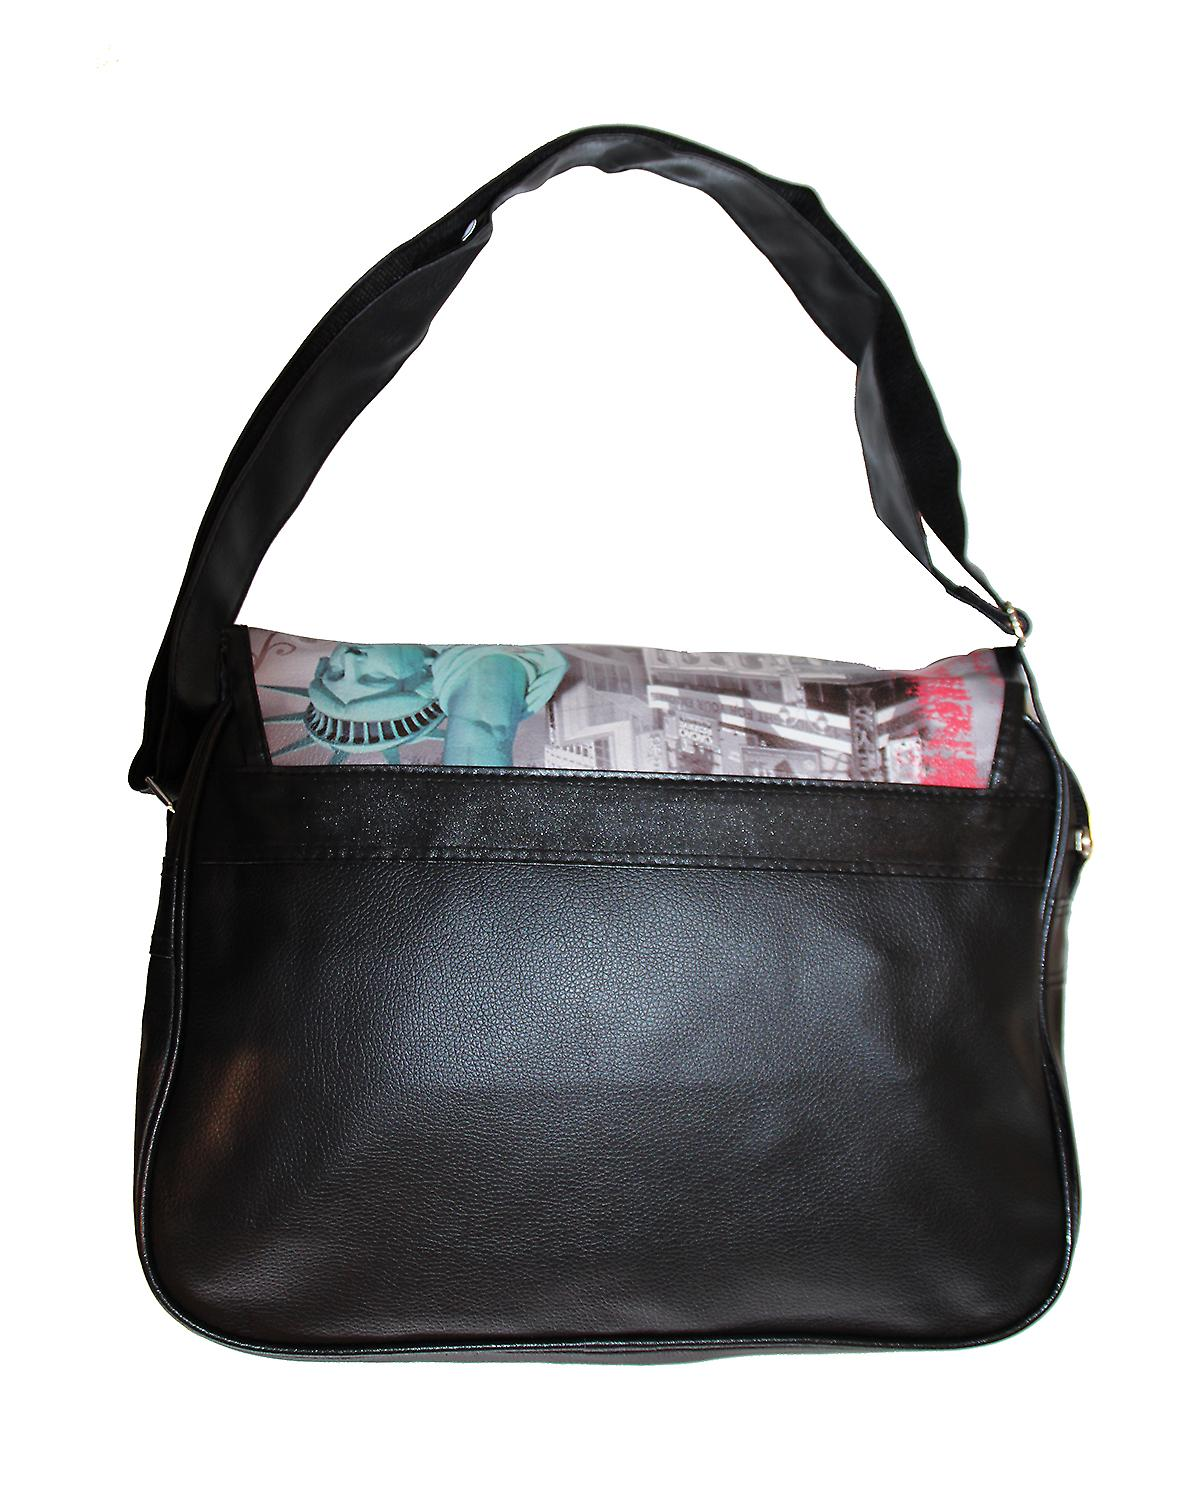 Waooh - Shoulder Bag New York Emtha